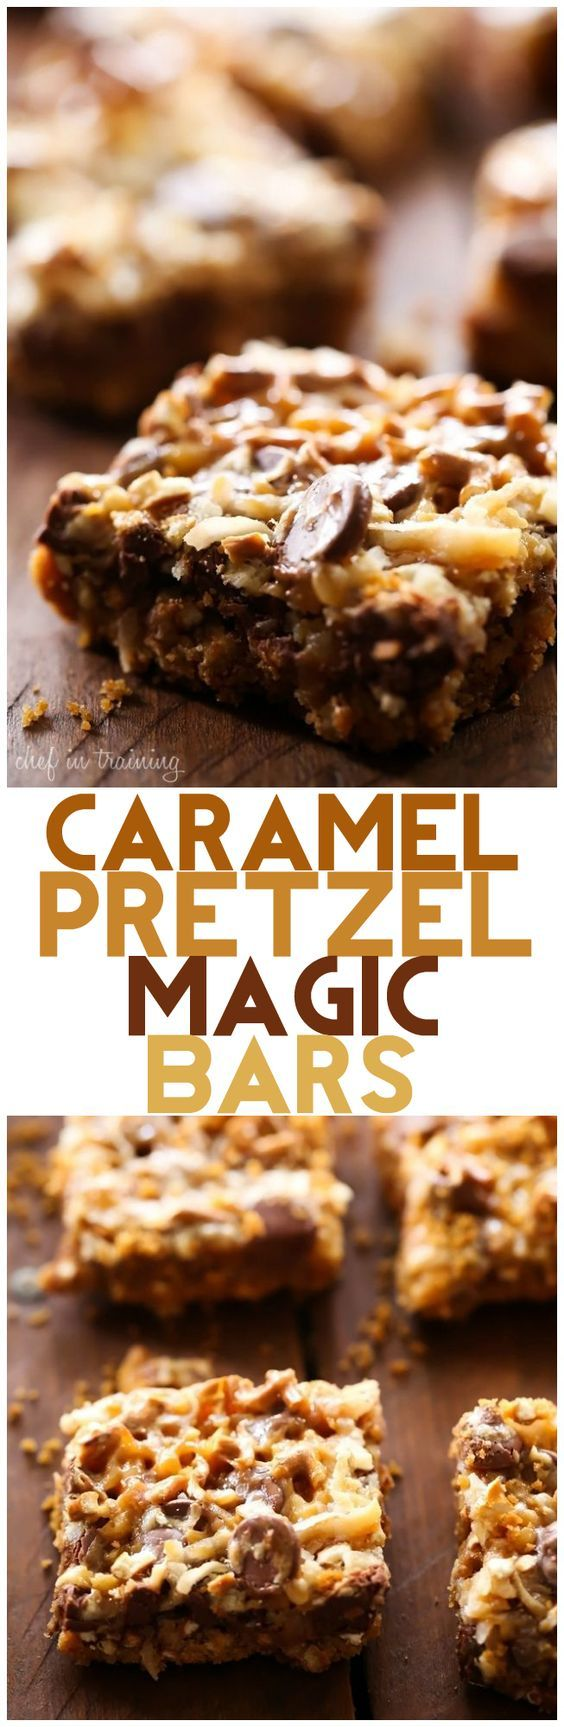 Caramel Pretzel Magic Bars... These are ooey gooey salty and sweet! The flavor and texture are amazing! The pretzel brings such a fun and exciting element to a classic recipe and the caramel addition is perfection!